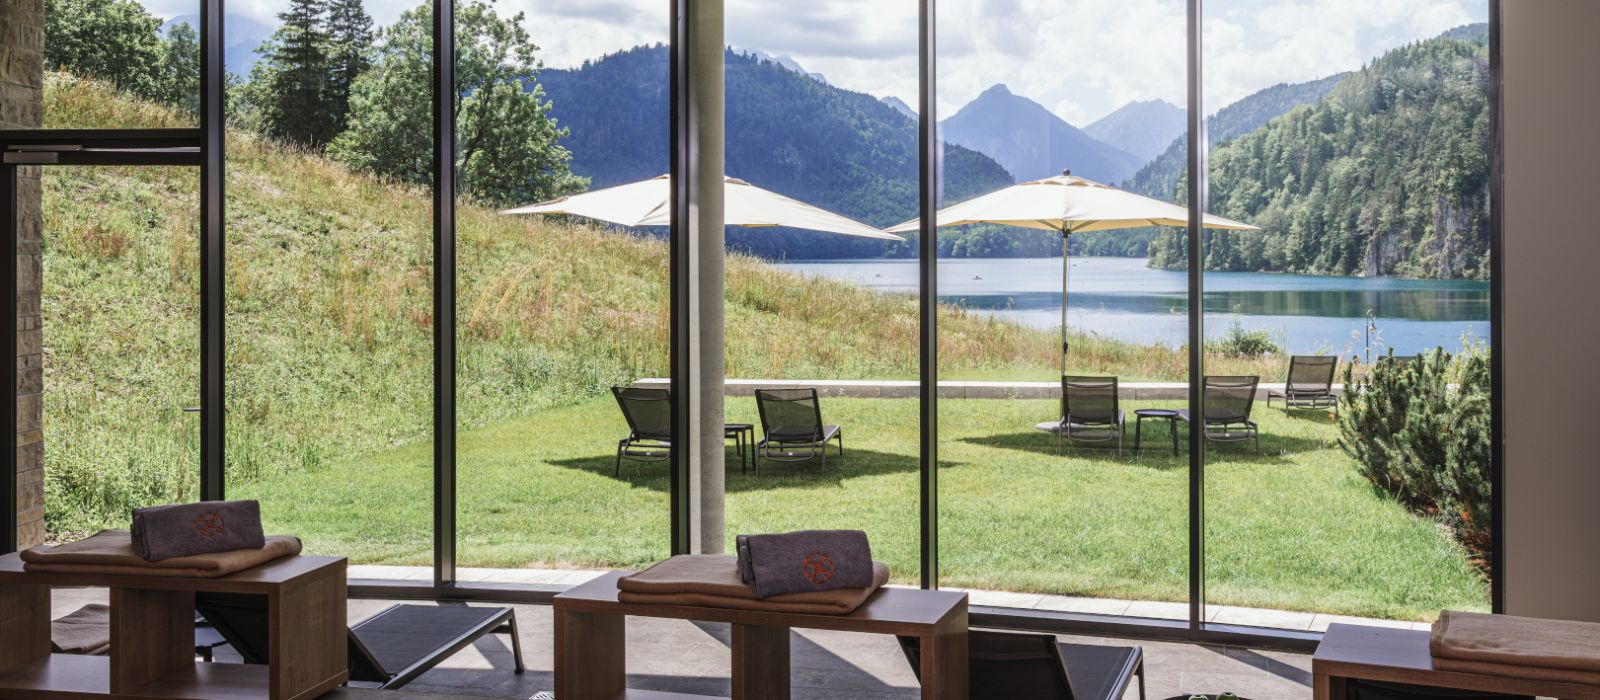 Hotel AMERON Neuschwanstein Alpsee Resort & Spa Germany